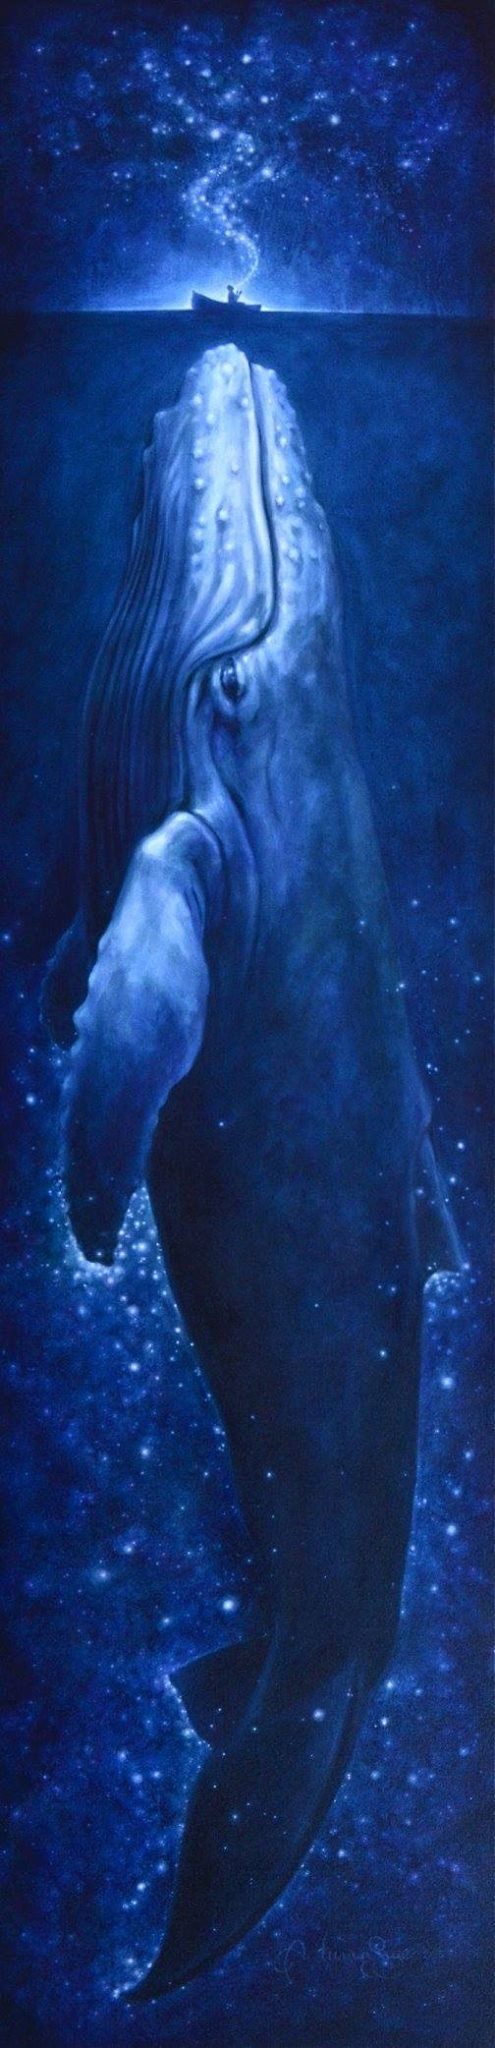 """""""Whale Song"""" 18""""x 72"""", acrylic on canvas.  ...The whale teaches about listening to your inner voice, understanding the impact your emotions have on your everyday life, and following your own truth. We are encouraged to understand that things are not always what they appear on the surface, and to open ourselves to the mysteries of the unknown. Whale medicine also urges us to sing, to express our inner hearts and to use sound frequencies that balance our emotional bodies and he"""